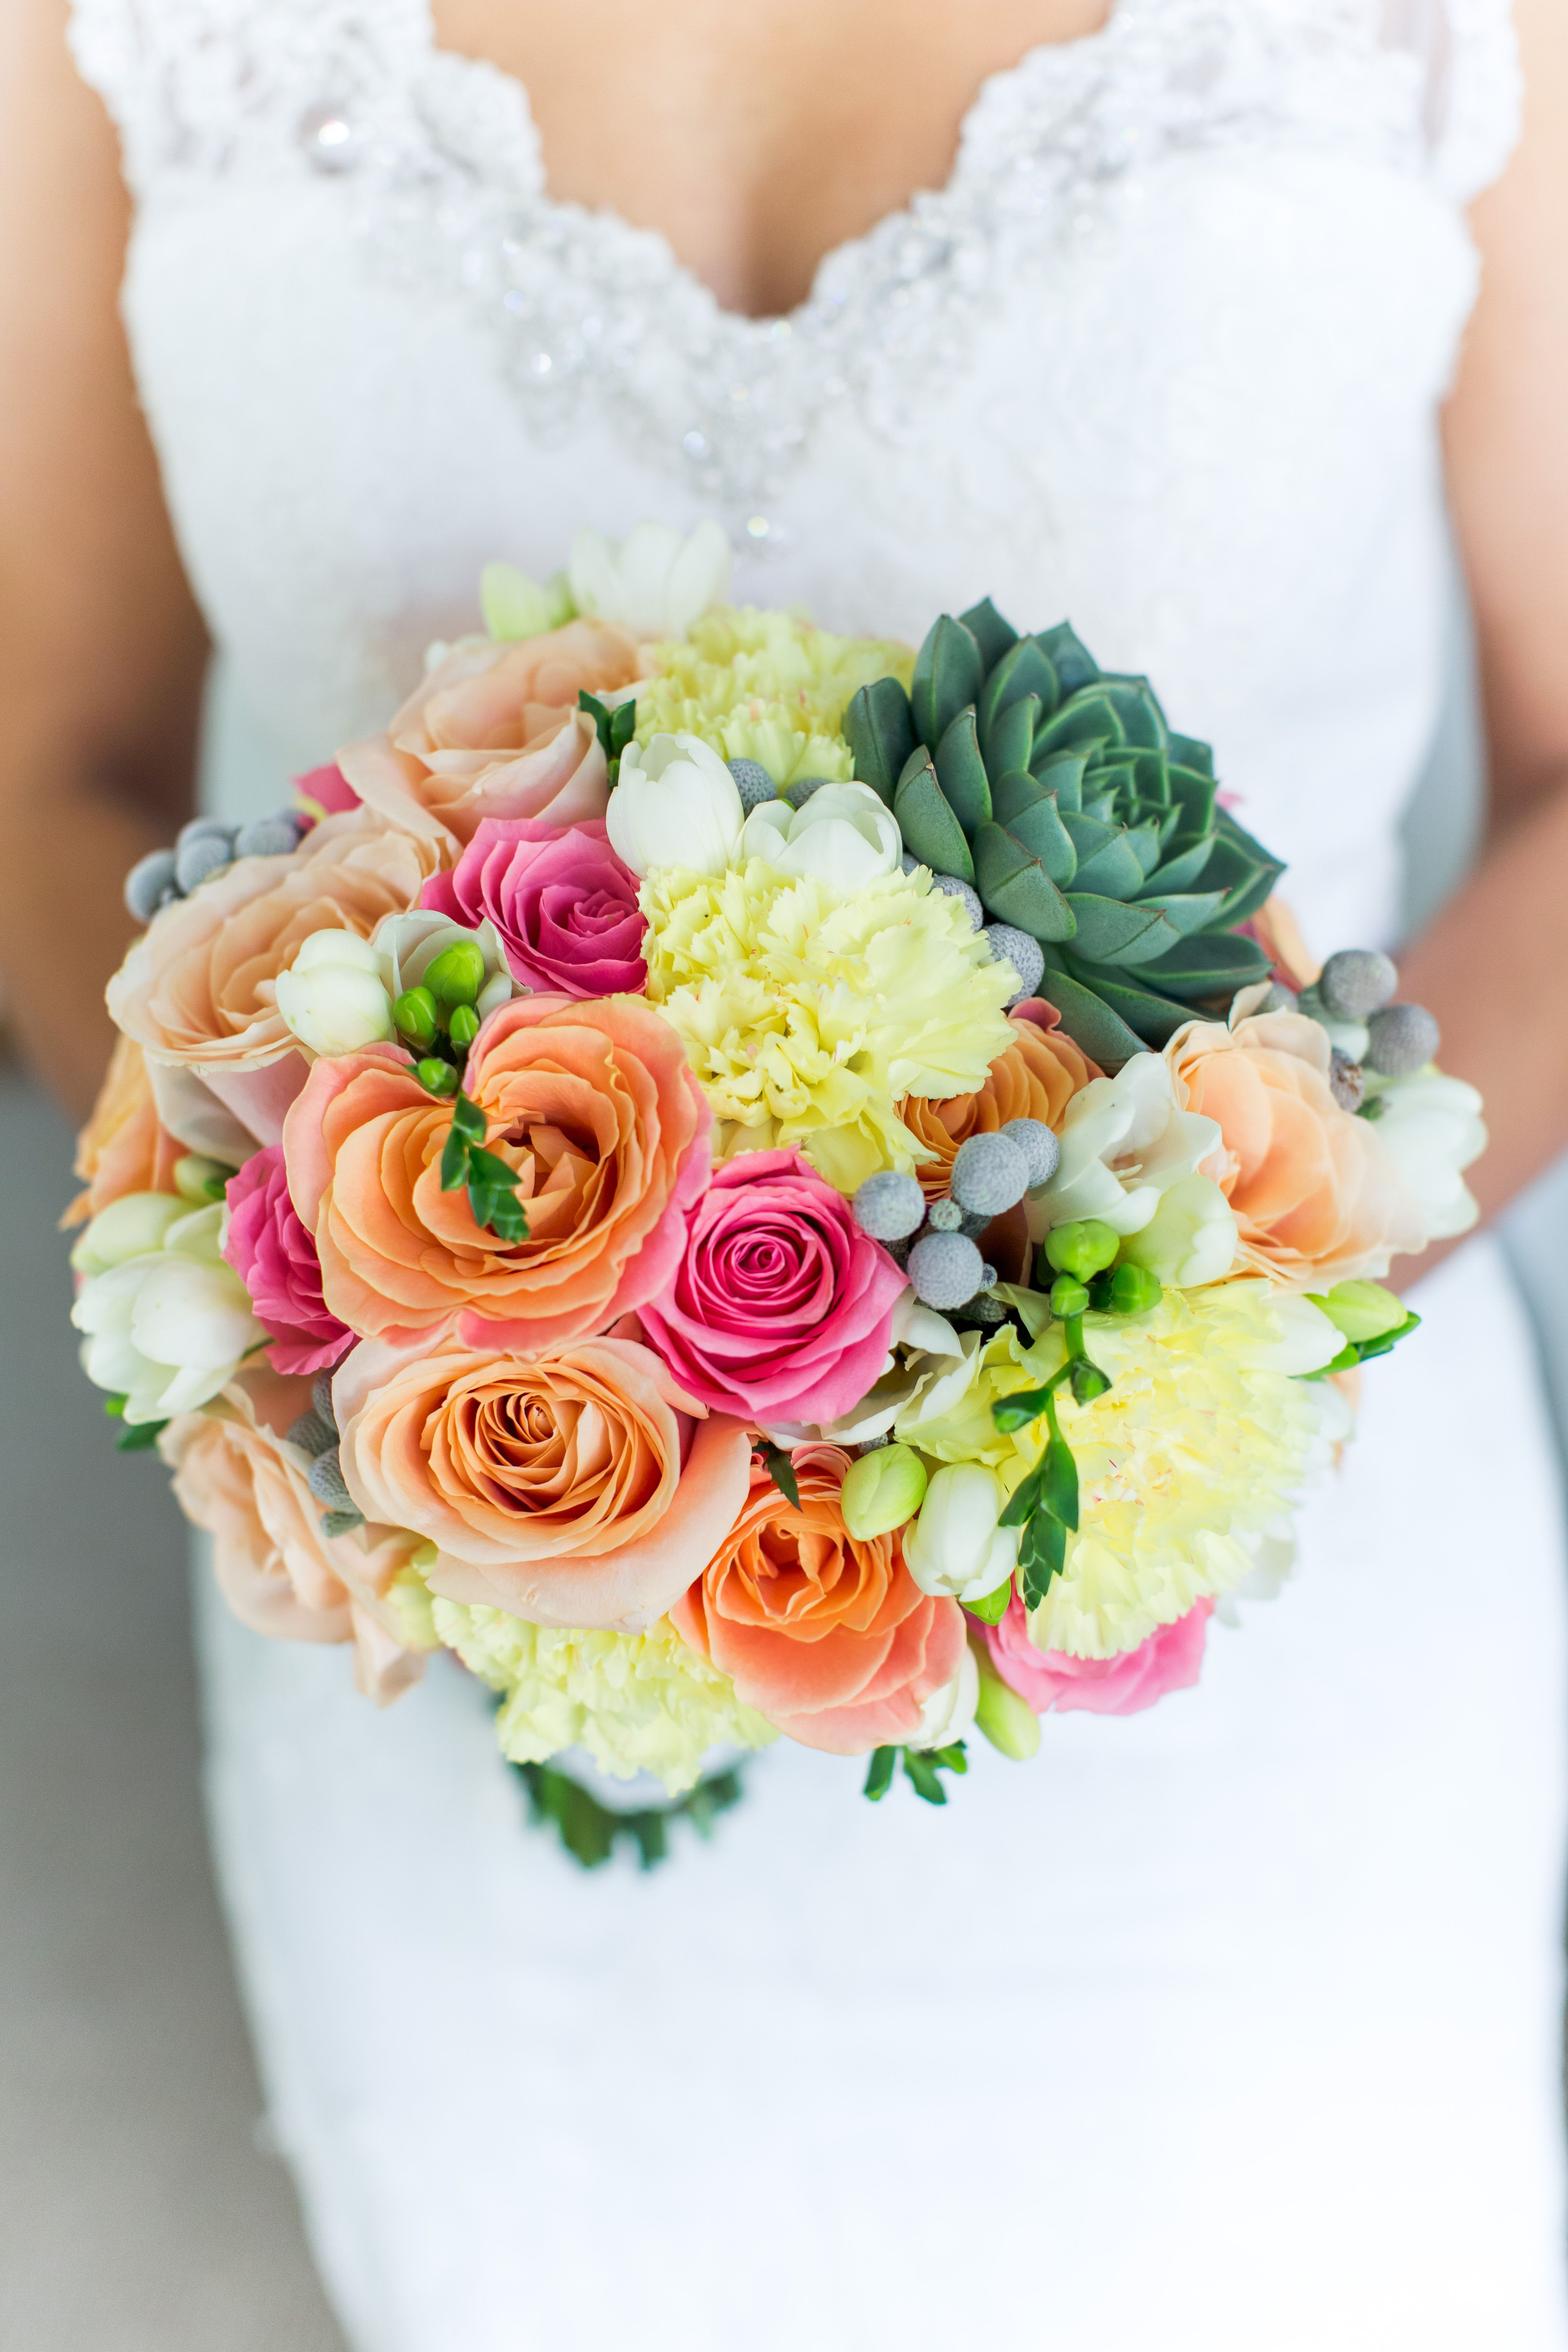 Bridal Bouquet In Yellow Peach Pink Colors With Miss Piggy Roses Freesia Brunia Succulent Carnations Peach Wedding Bouquet Peach Wedding Bridal Bouquet